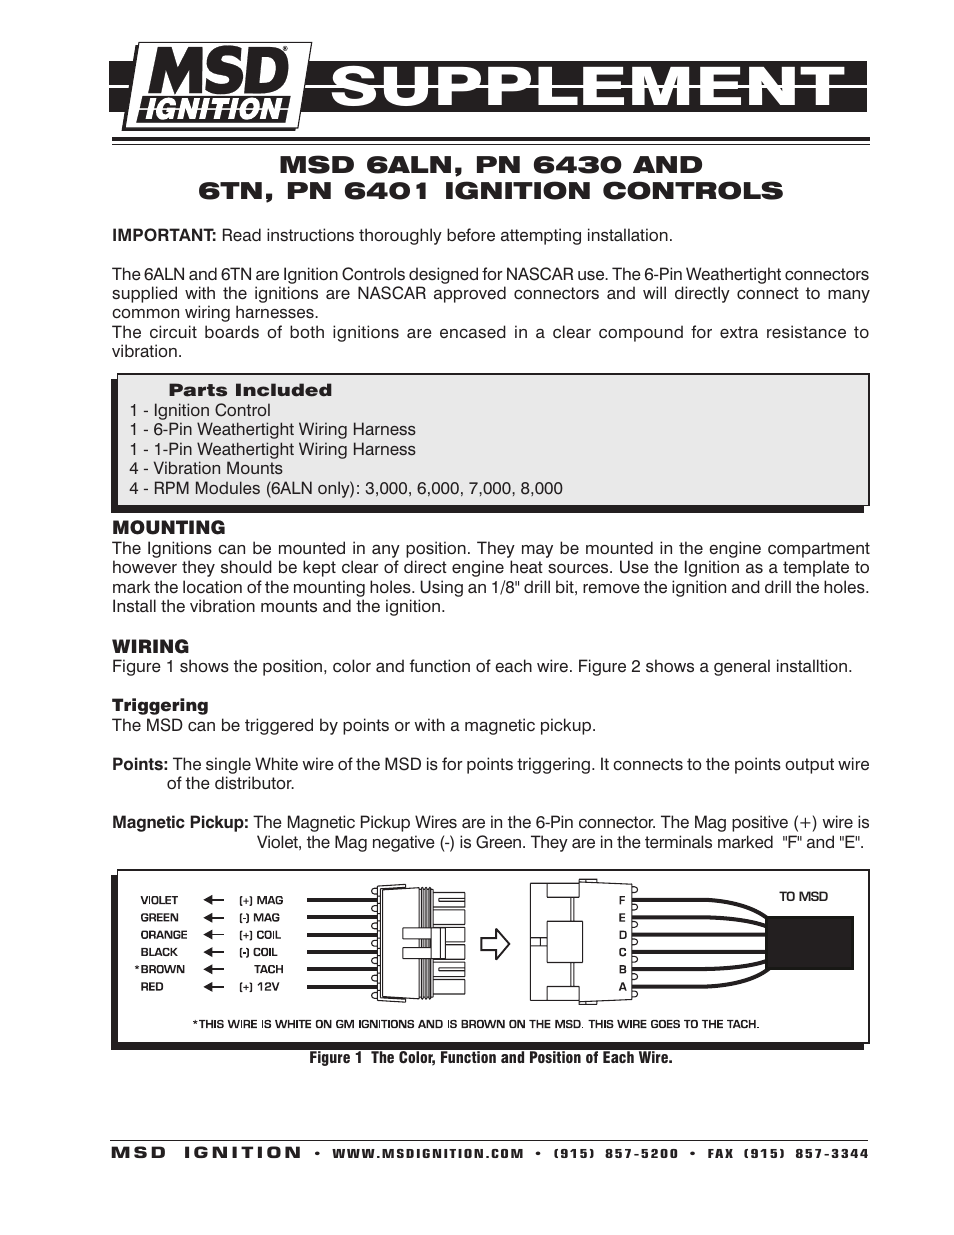 msd 6430 6aln ignition control supplement page1 tg66m3170c00 wiring diagram,m \u2022 indy500 co  at reclaimingppi.co